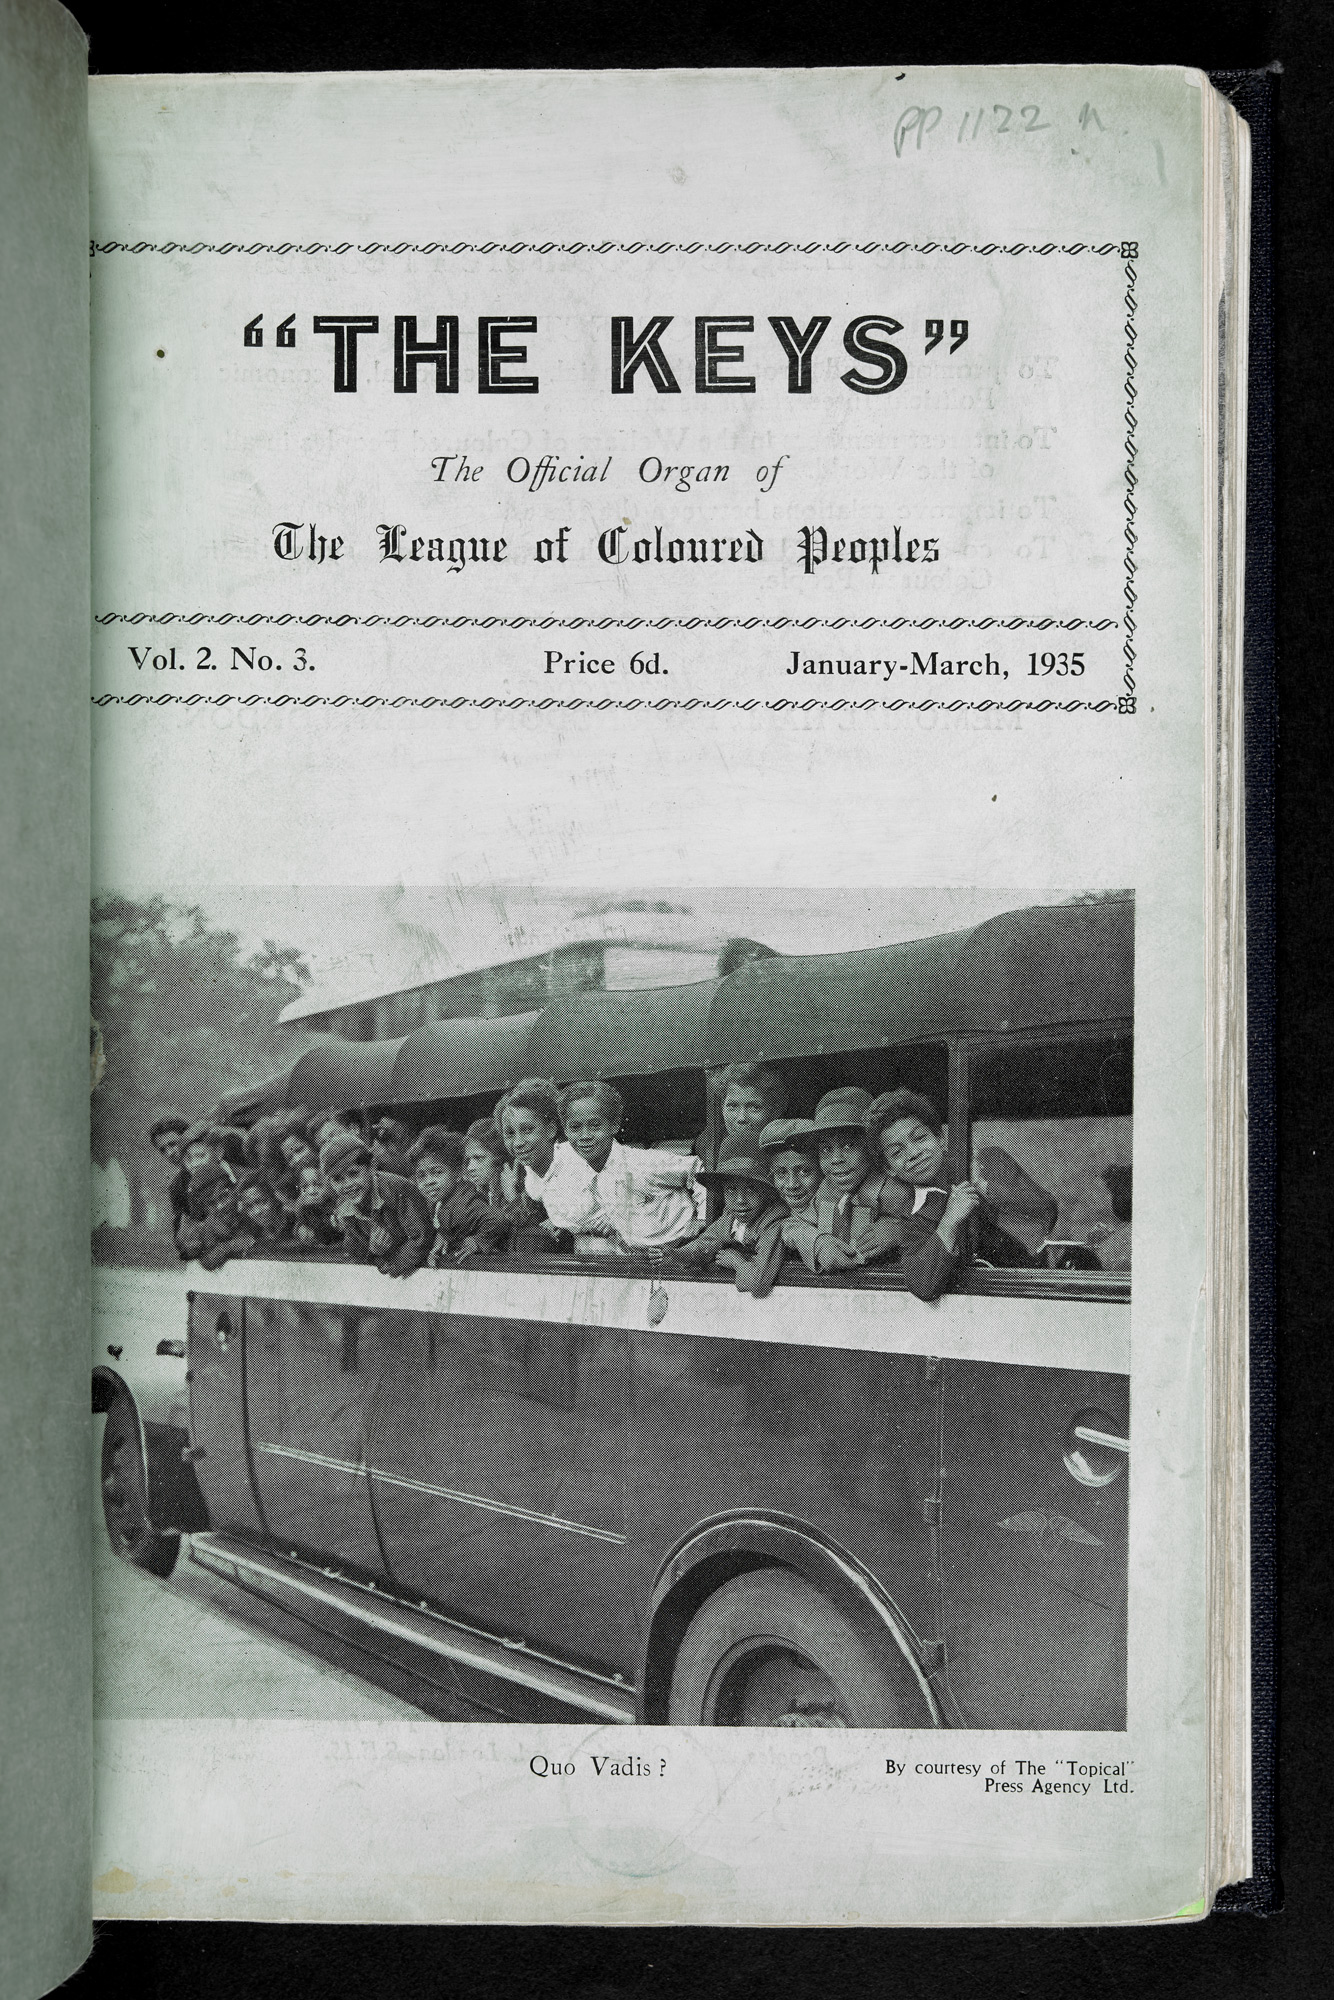 The Keys front cover, showing Topical Press Agency photograph of group of school children on a bus